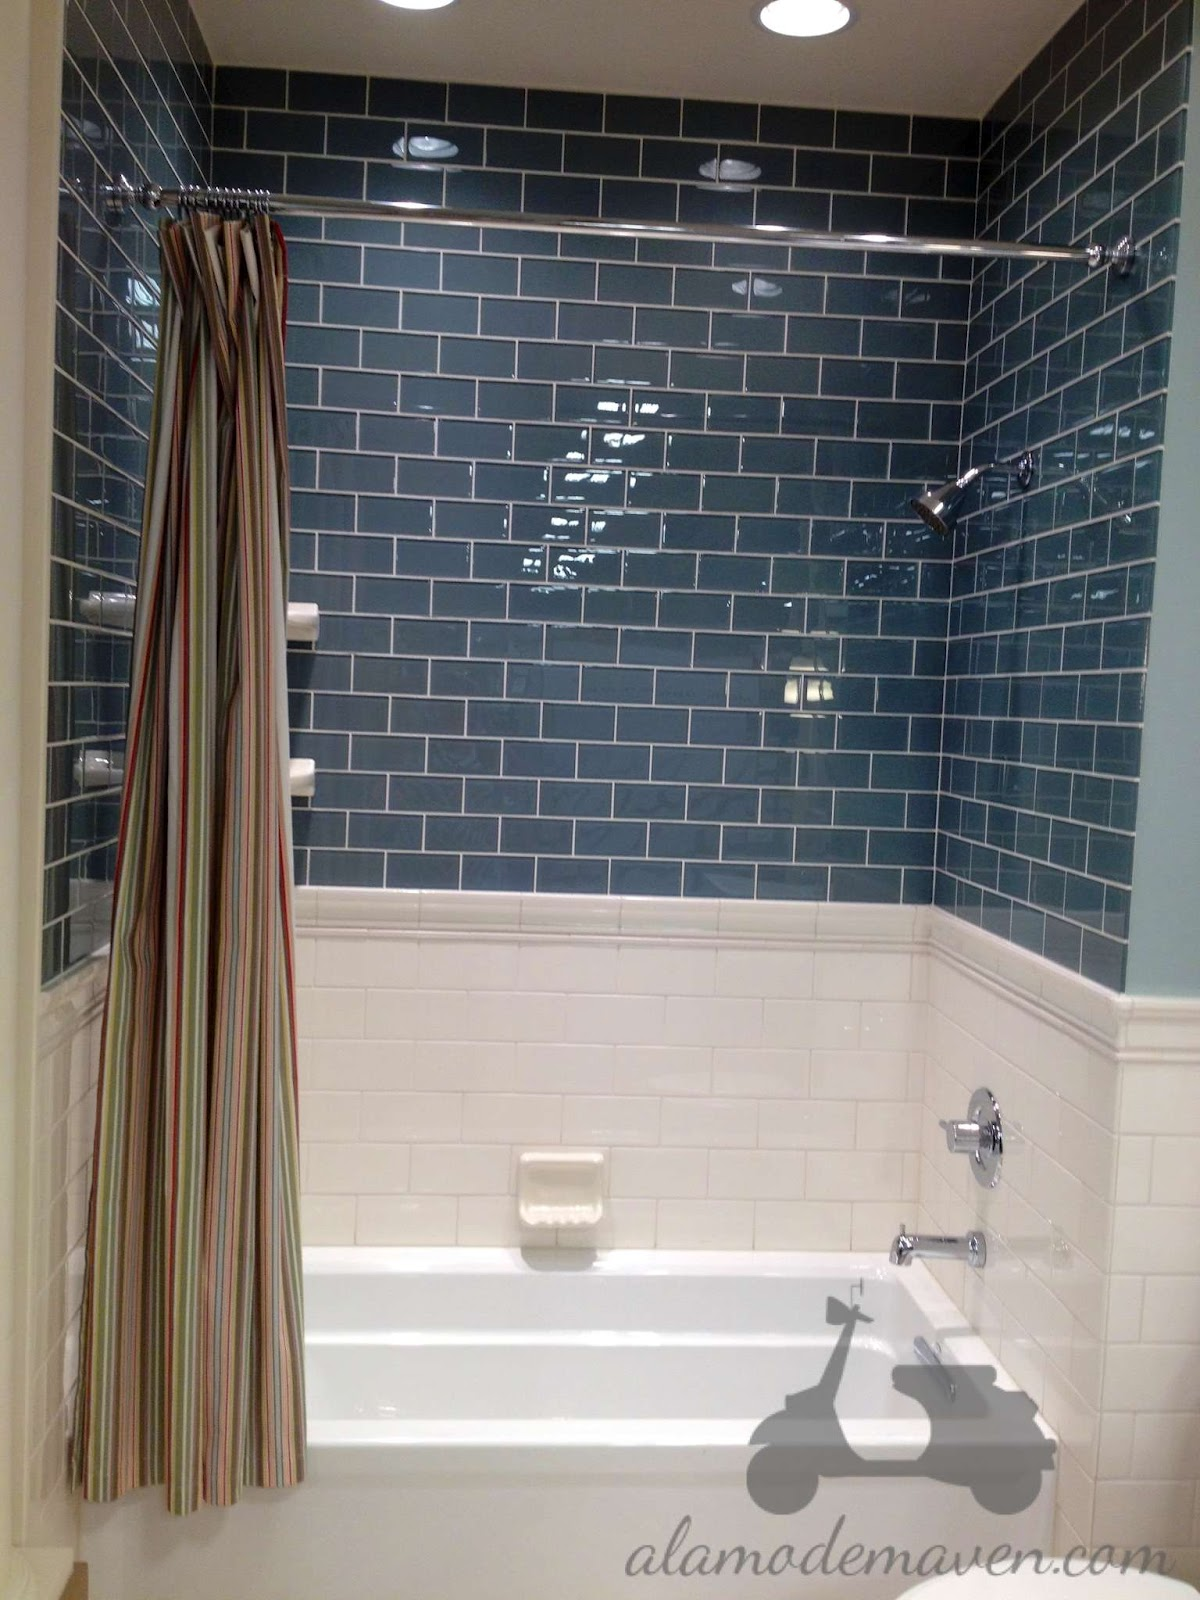 Bathroom Tiles Pictures Glass Tile Shower On Pinterest Glass Tiles Tile And